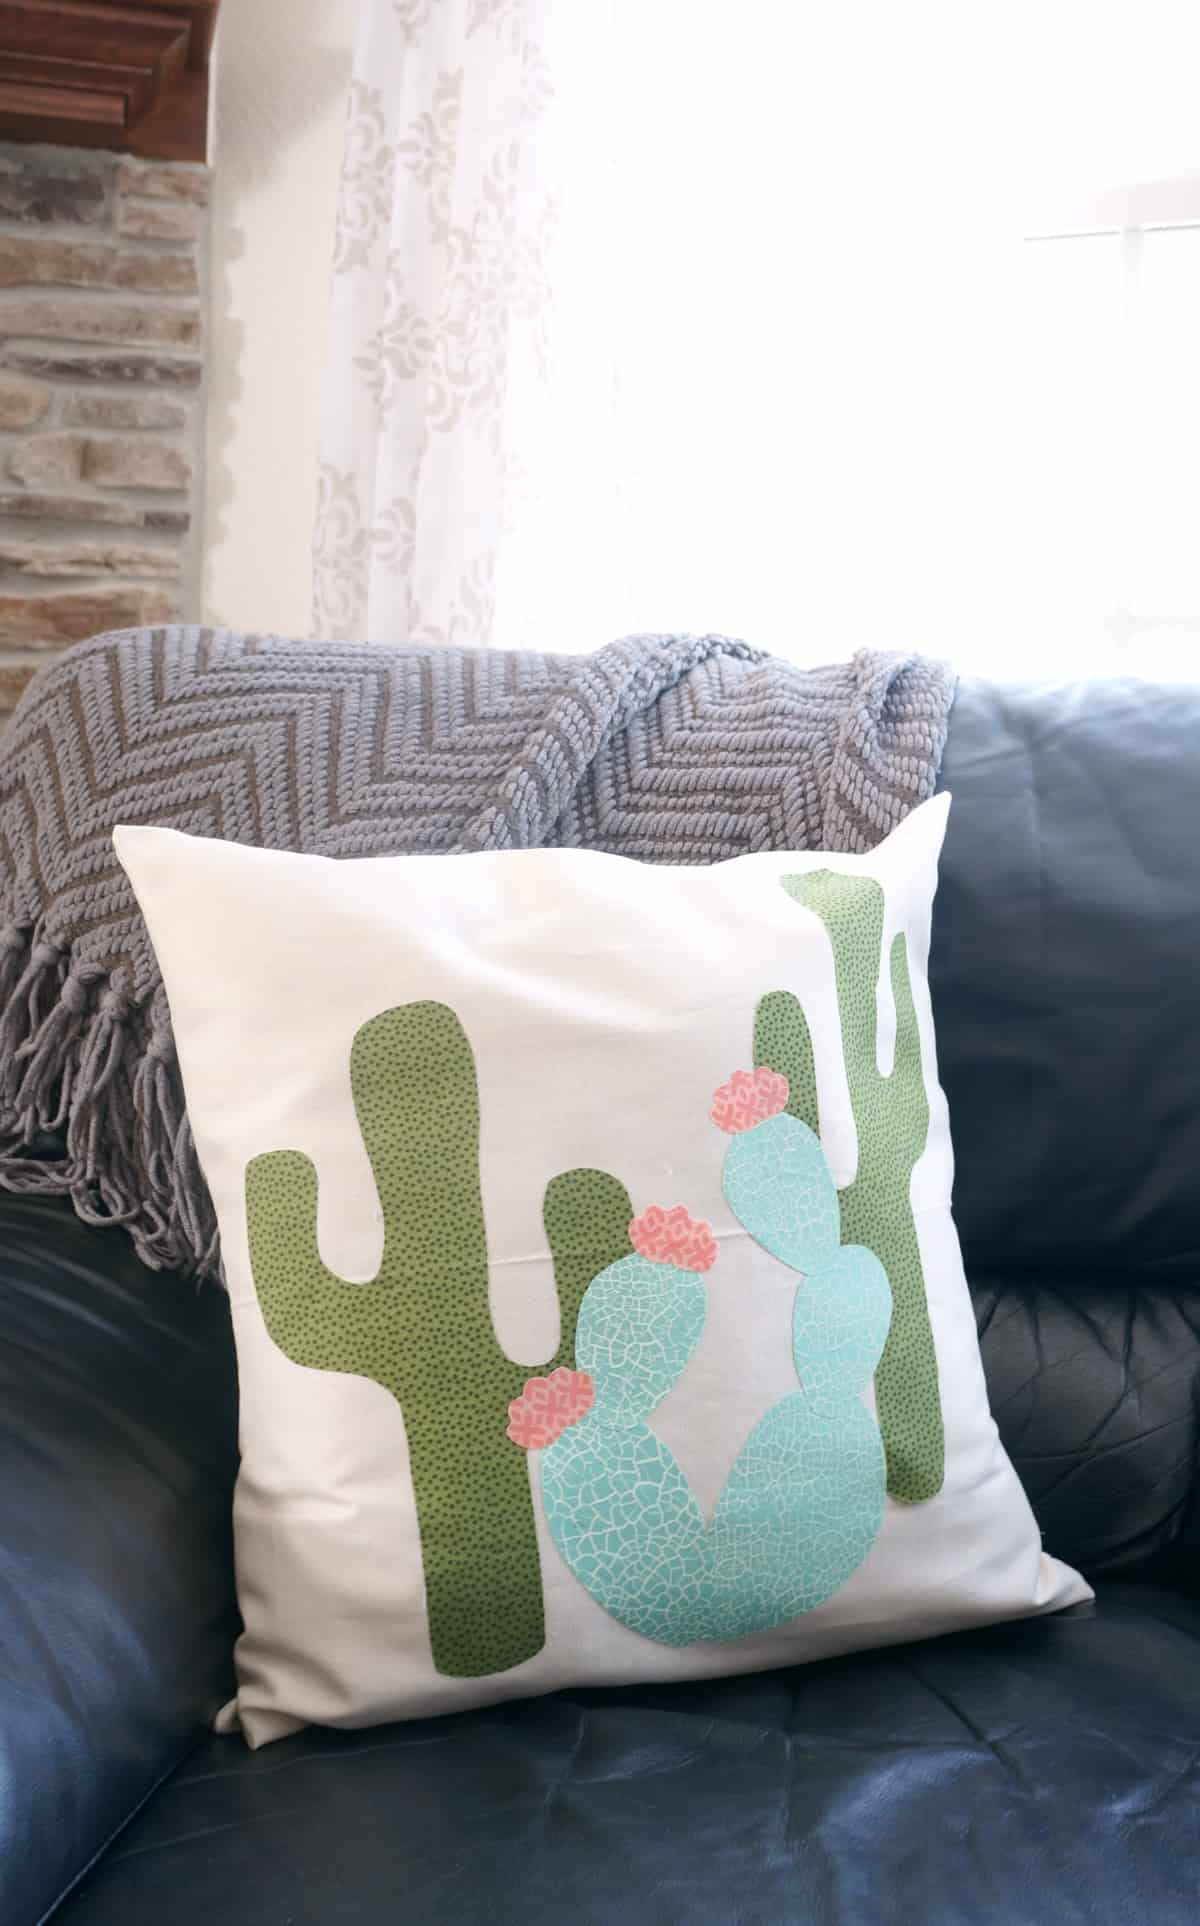 How to make a cactus pillow with free cactus template